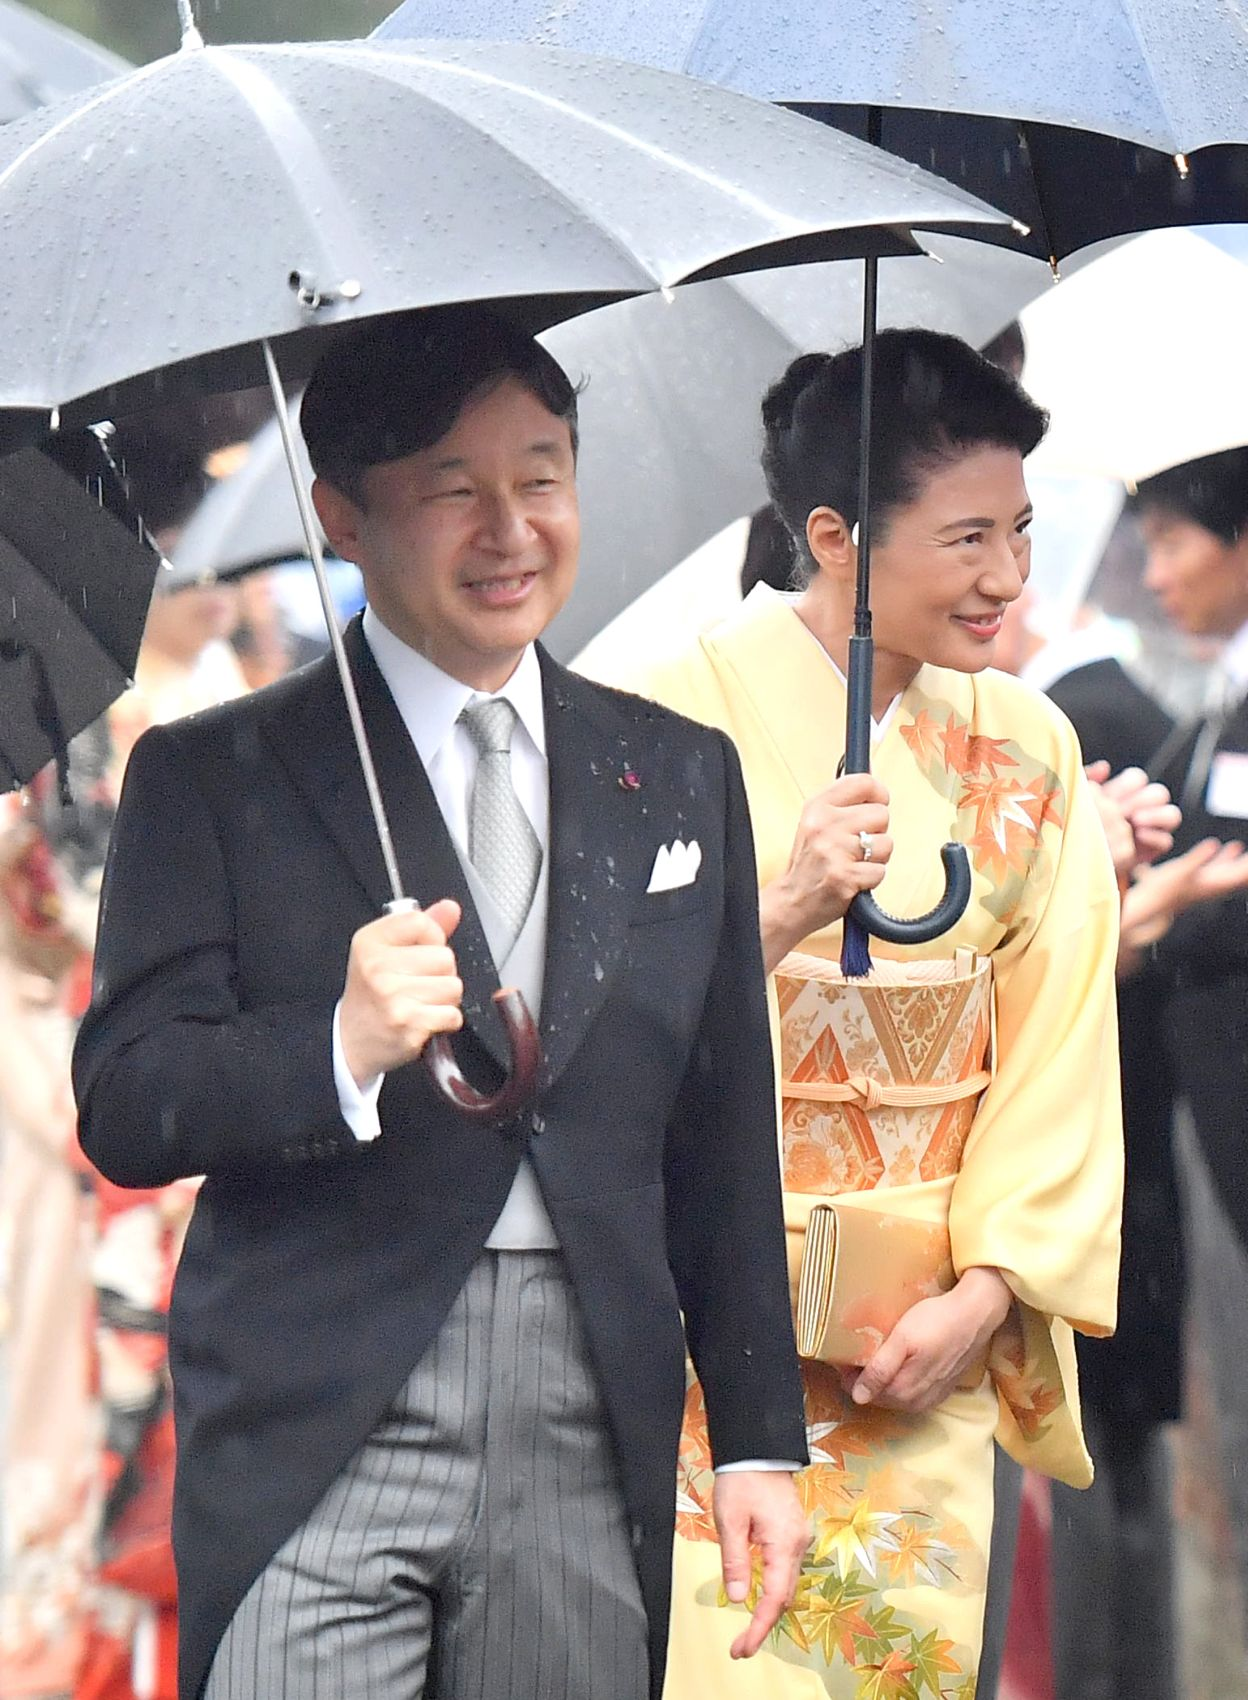 Emperor, Empress Host the Last Imperial Garden Party of the Heisei Era